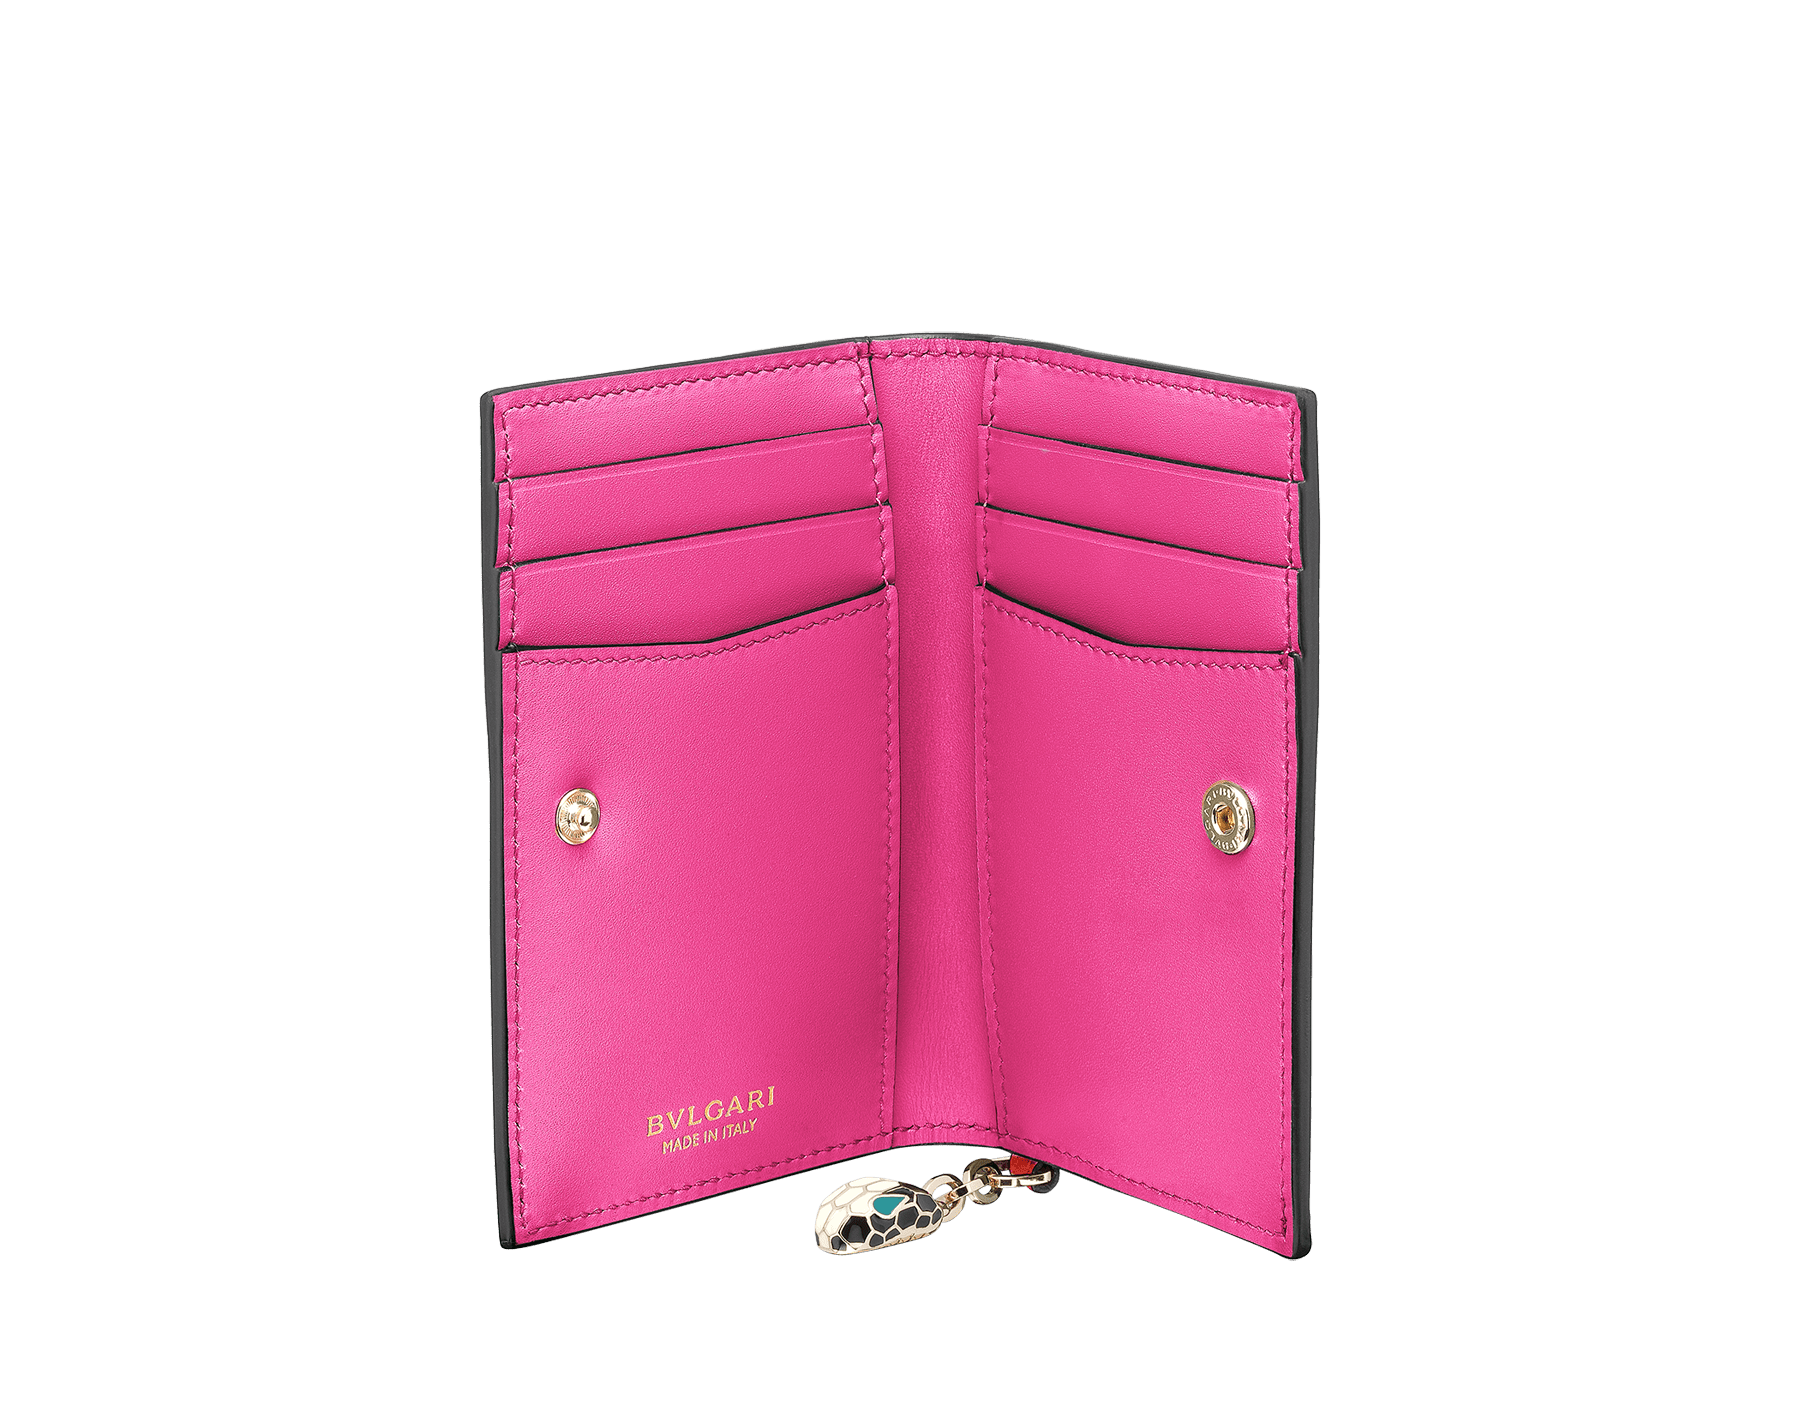 Serpenti Forever folded credit card holder in carmine jasper and flash amethyst calf leather. Iconic snakehead charm in black and white enamel, with green malachite enamel eyes. 288821 image 2